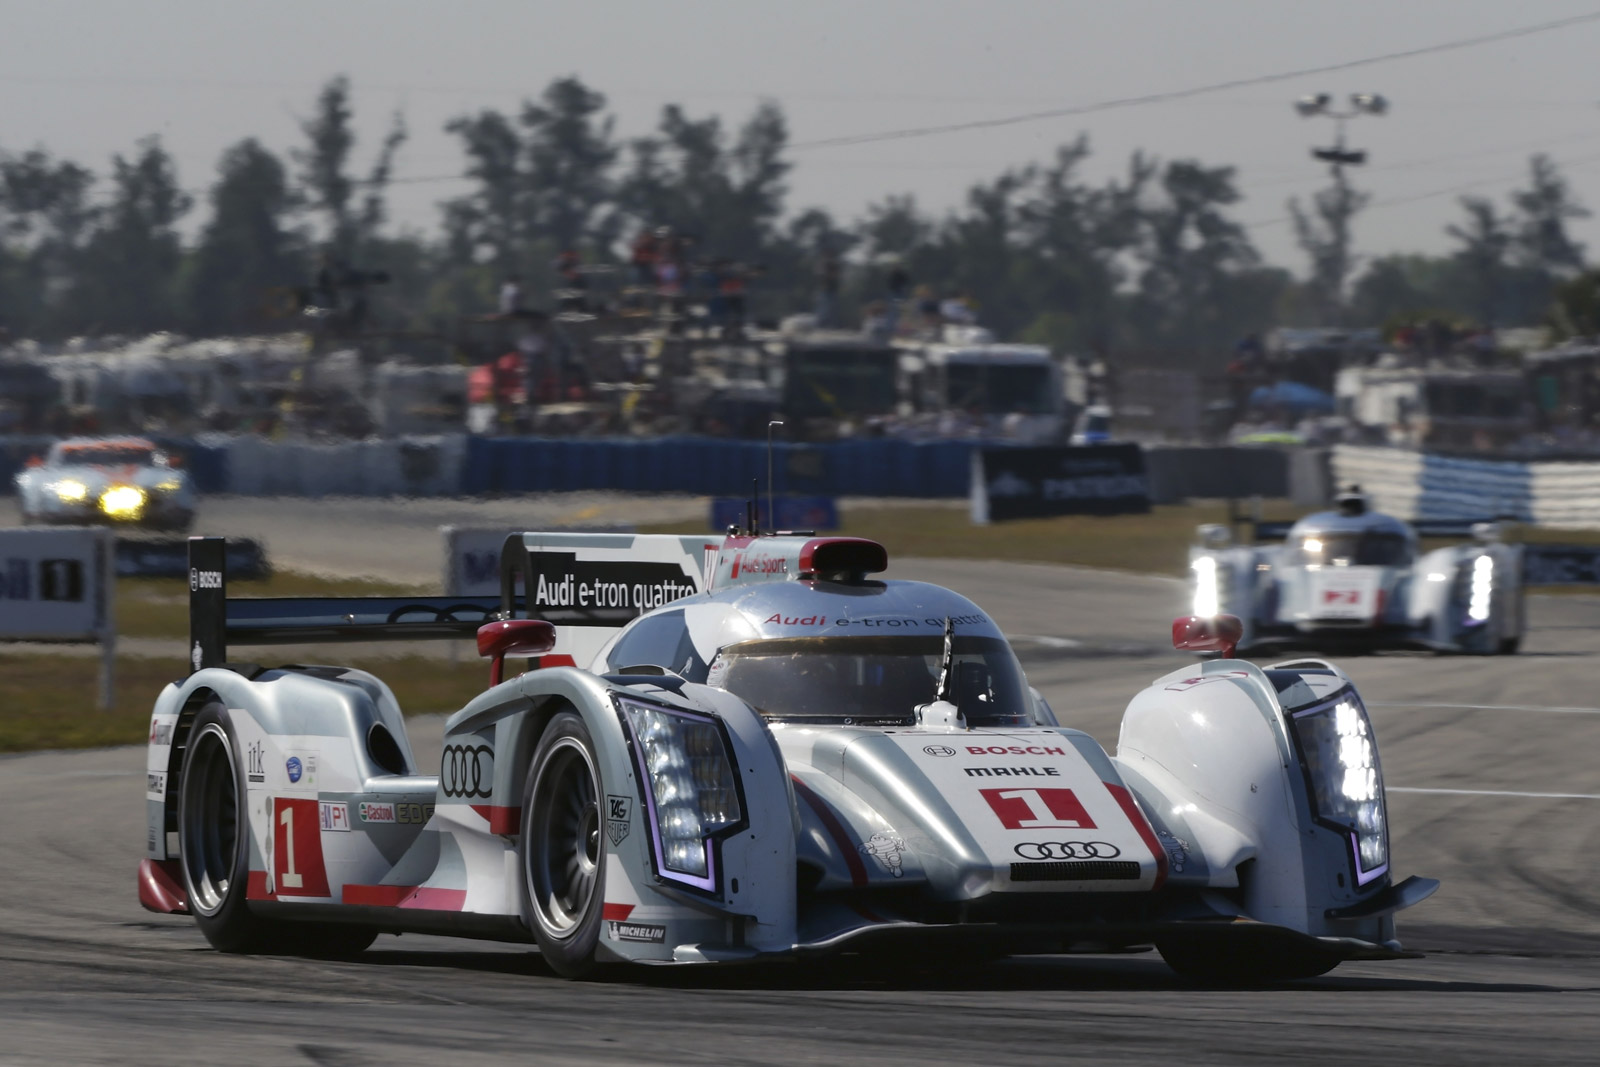 2013 audi r18 e tron quattro ready to defend le mans title. Black Bedroom Furniture Sets. Home Design Ideas